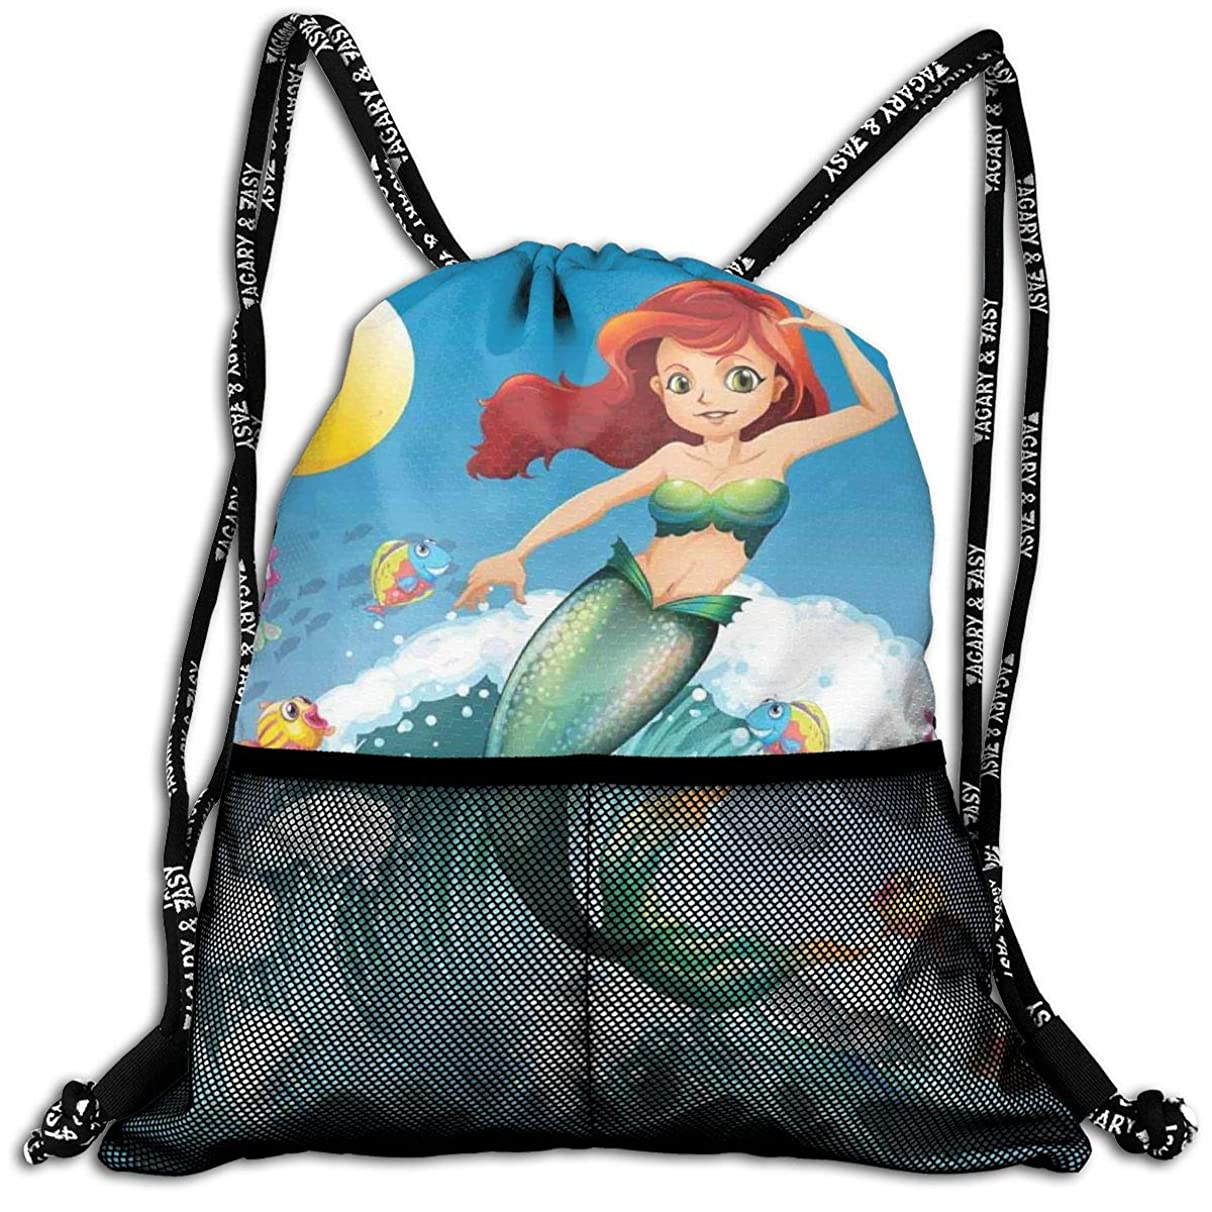 Drawstring Backpacks Bags,Illustration Of Cute Little Mermaid On Top Of A Big Wave In The Surf With Fish Kids,5 Liter Capacity,Adjustable